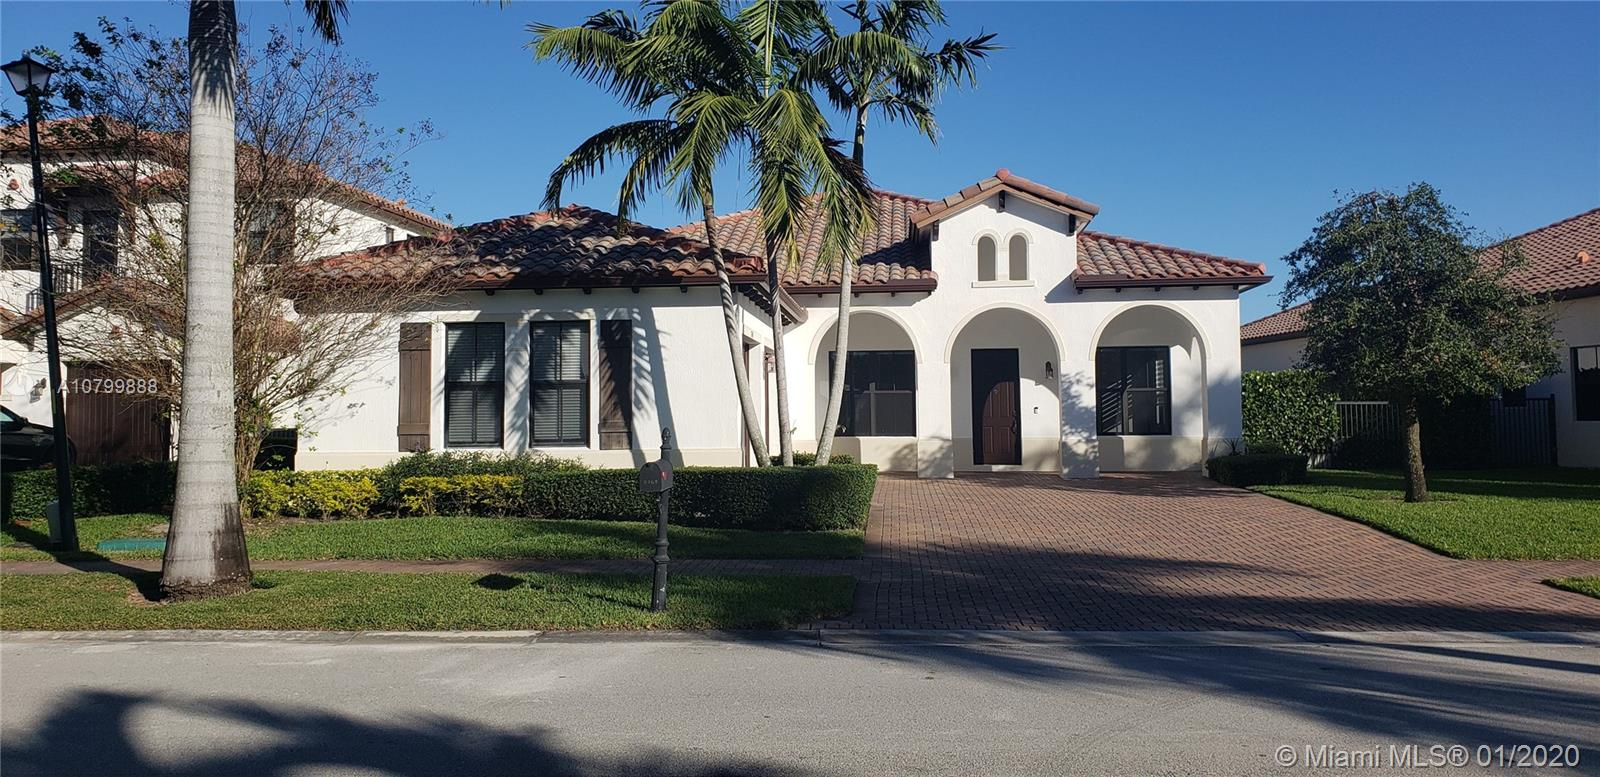 8369 NW 28th St  For Sale A10799888, FL